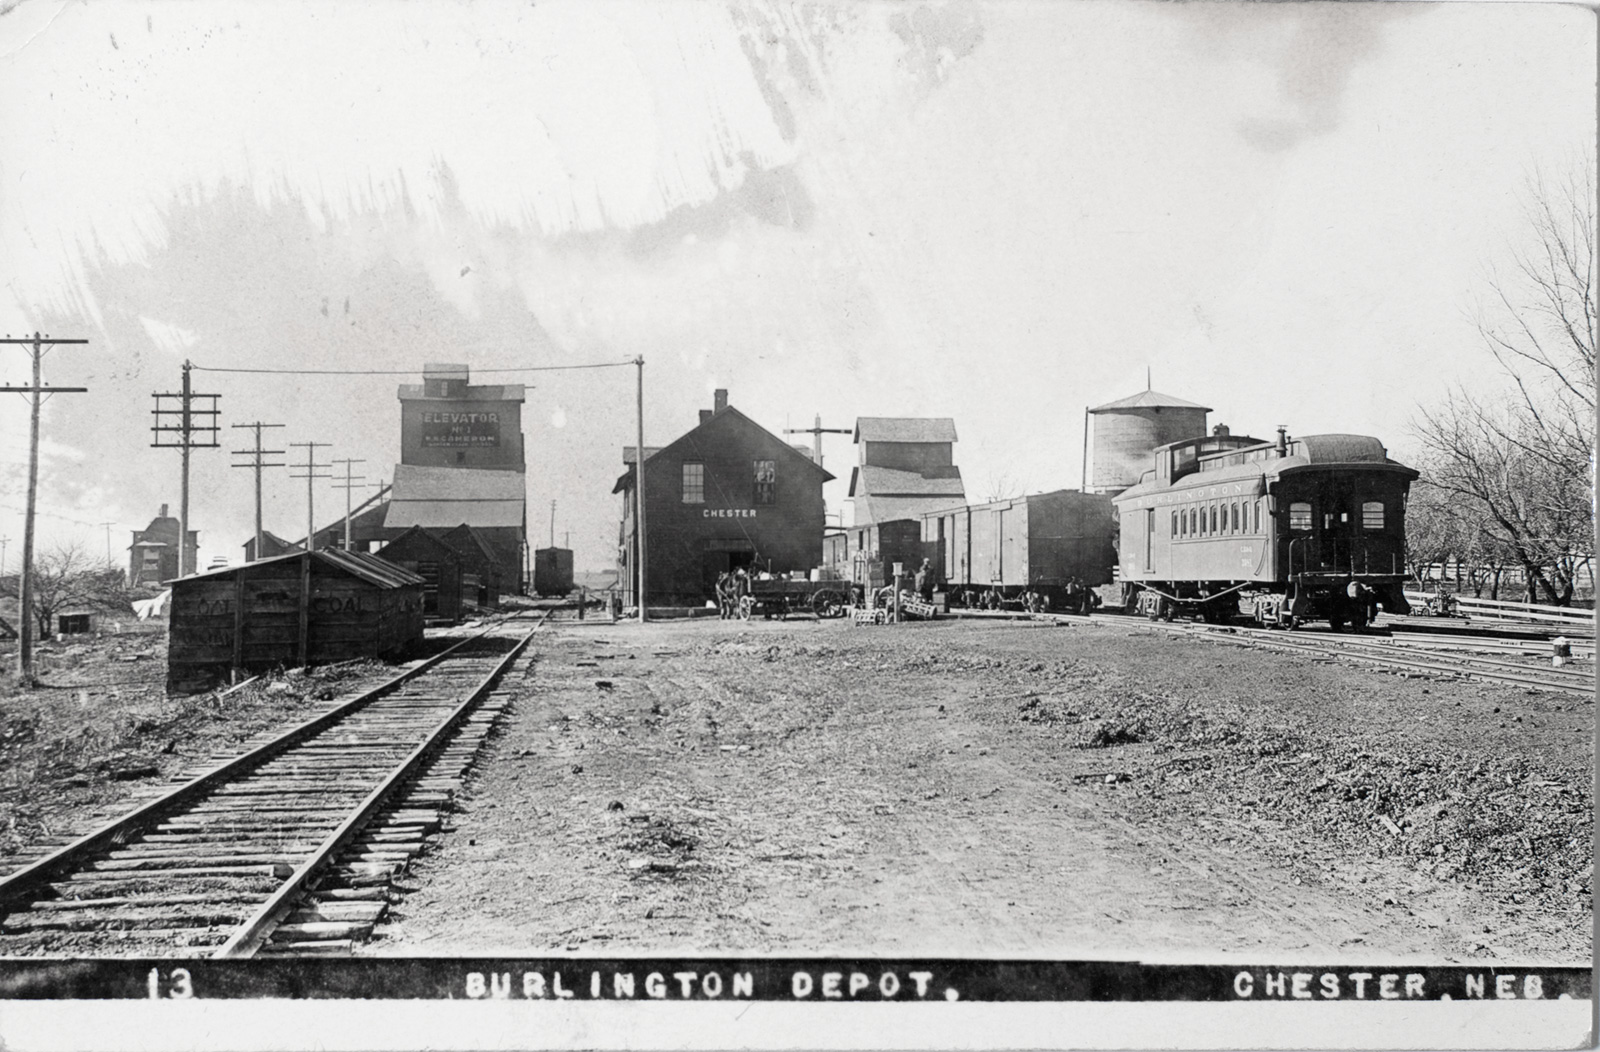 Burlington Depot in Chester Nebraska 1910 Image